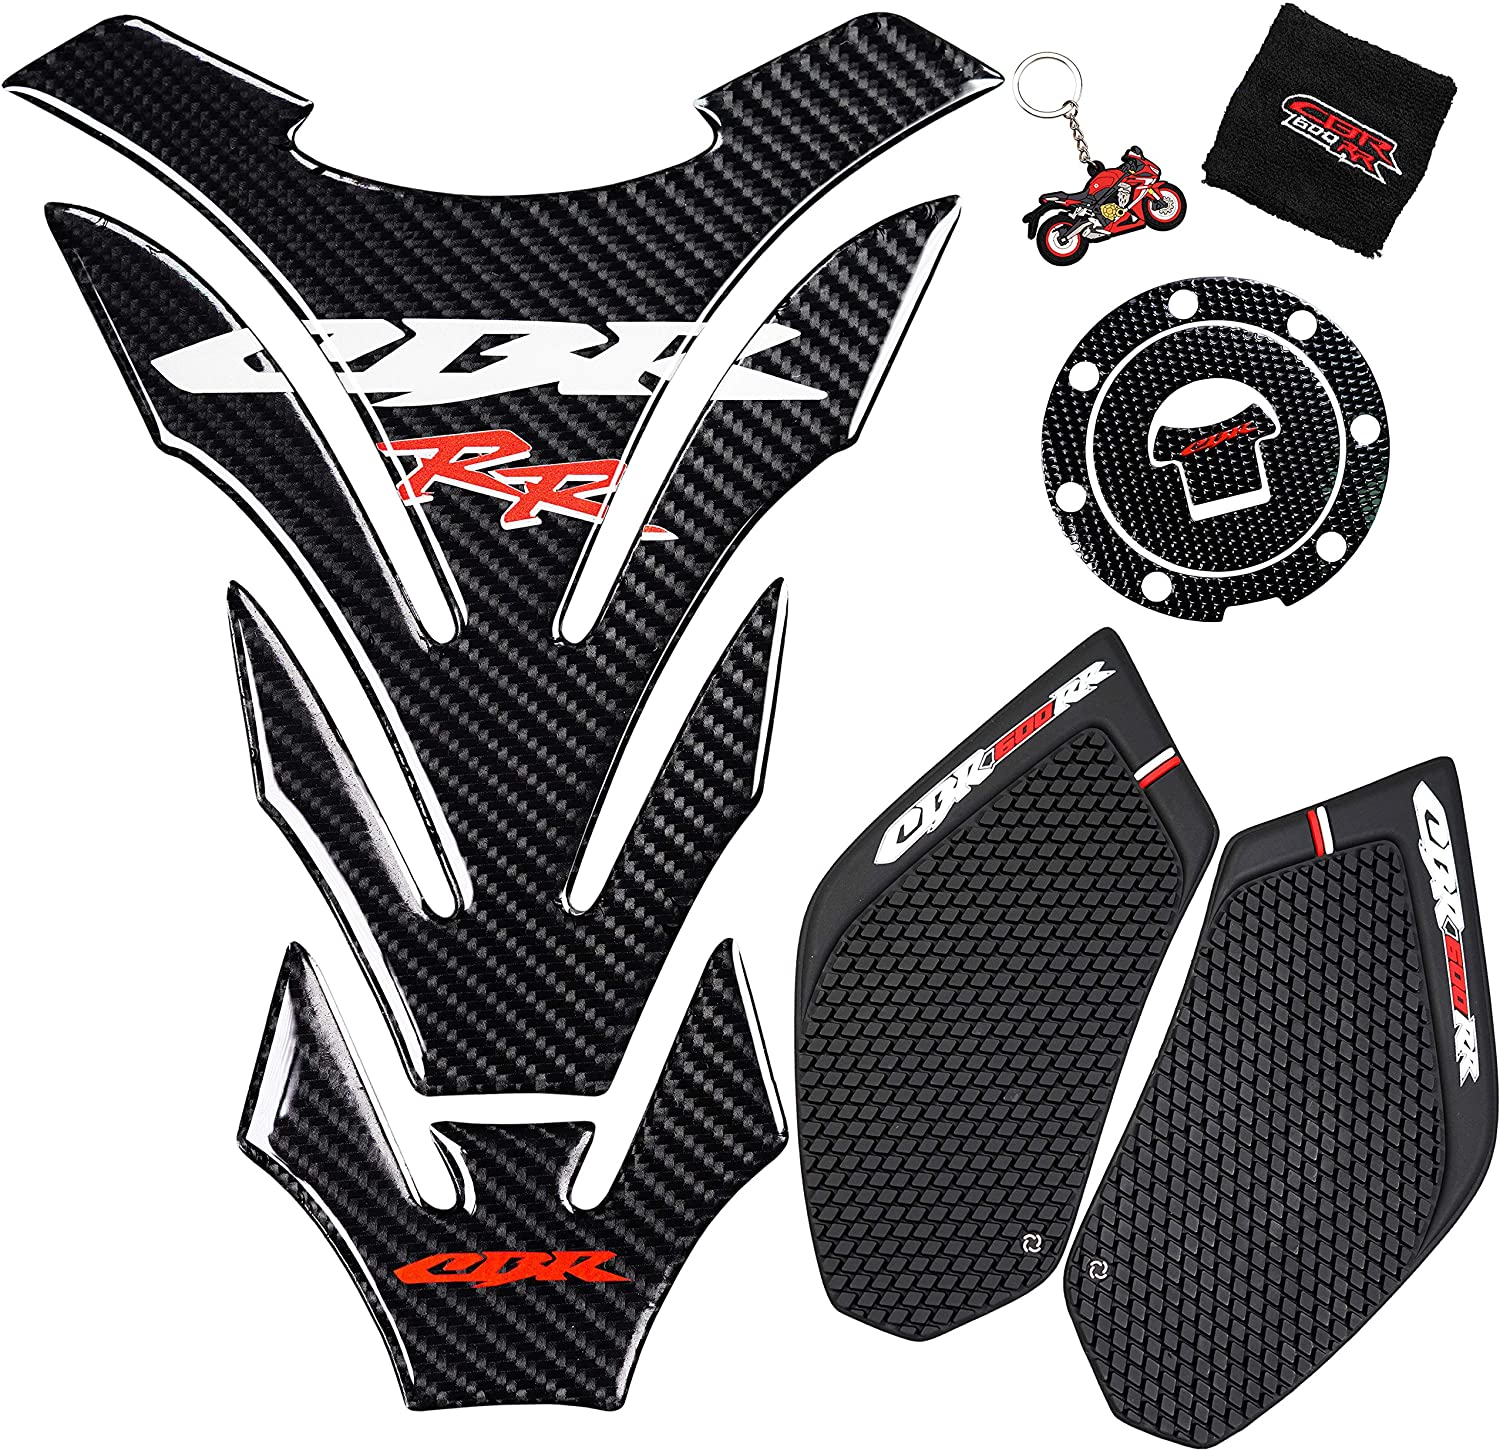 REVSOSTAR Real Carbon Look, Protector Pad, Tank Pad Decal Stickers, Tank Side Traction Pad, Fuel Gas